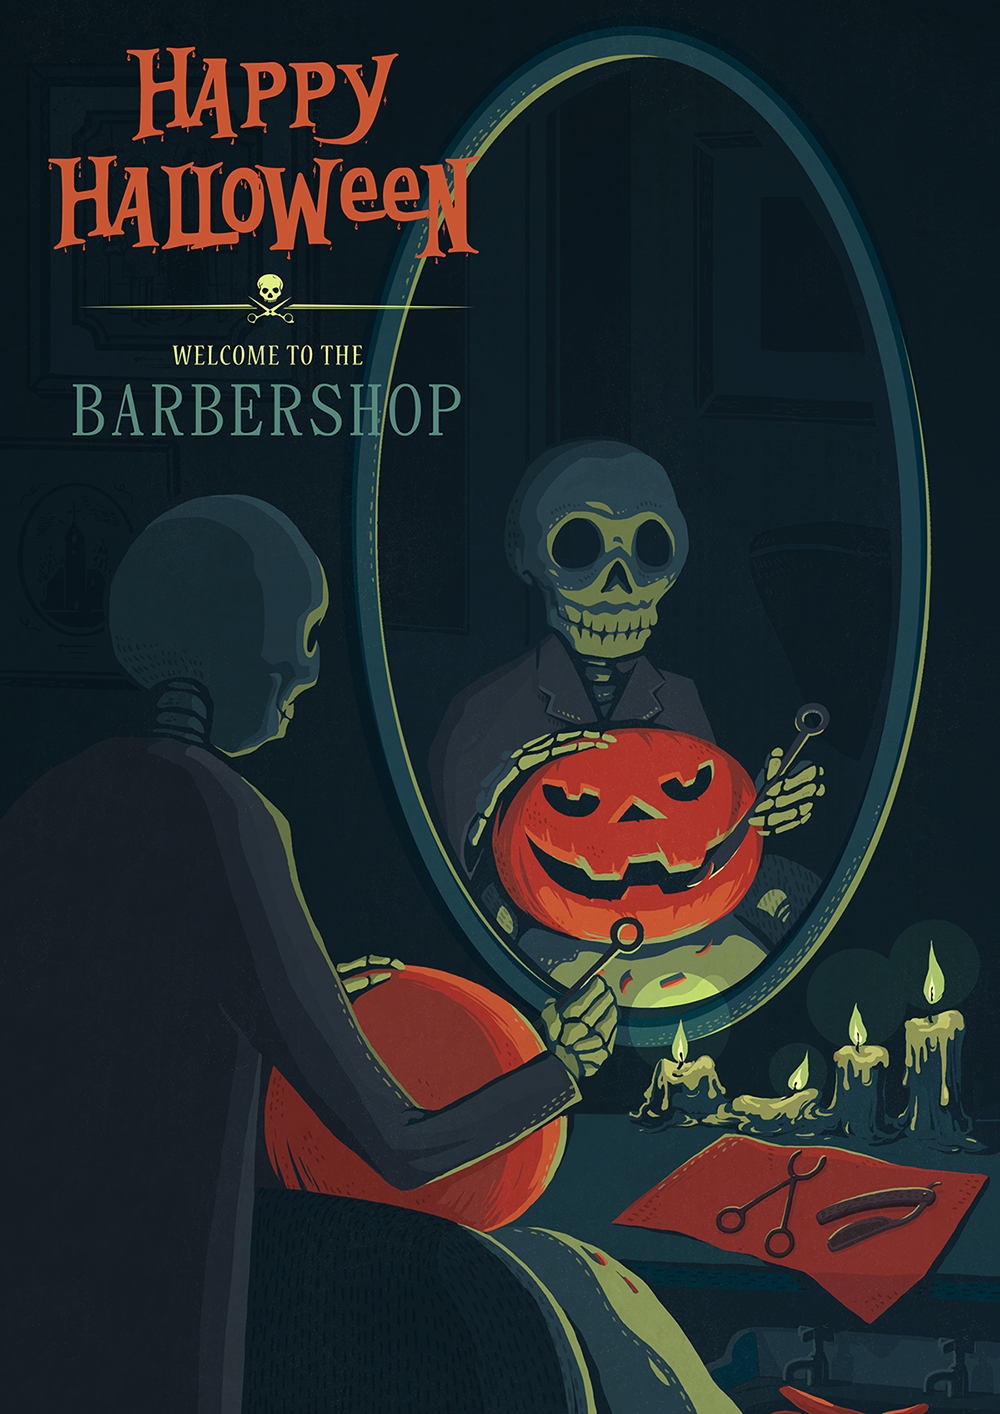 I always loved those old barber shops, the wall decorations, the old wooden floor and sink, the huge leather chair etc.. Although I don't get much chance to been inside, as a girl I usually have to go to those beauty hair salon.  This Halloween theme illustration idea with a barber shop came to me from nowhere ,but turns out it kind of cool!